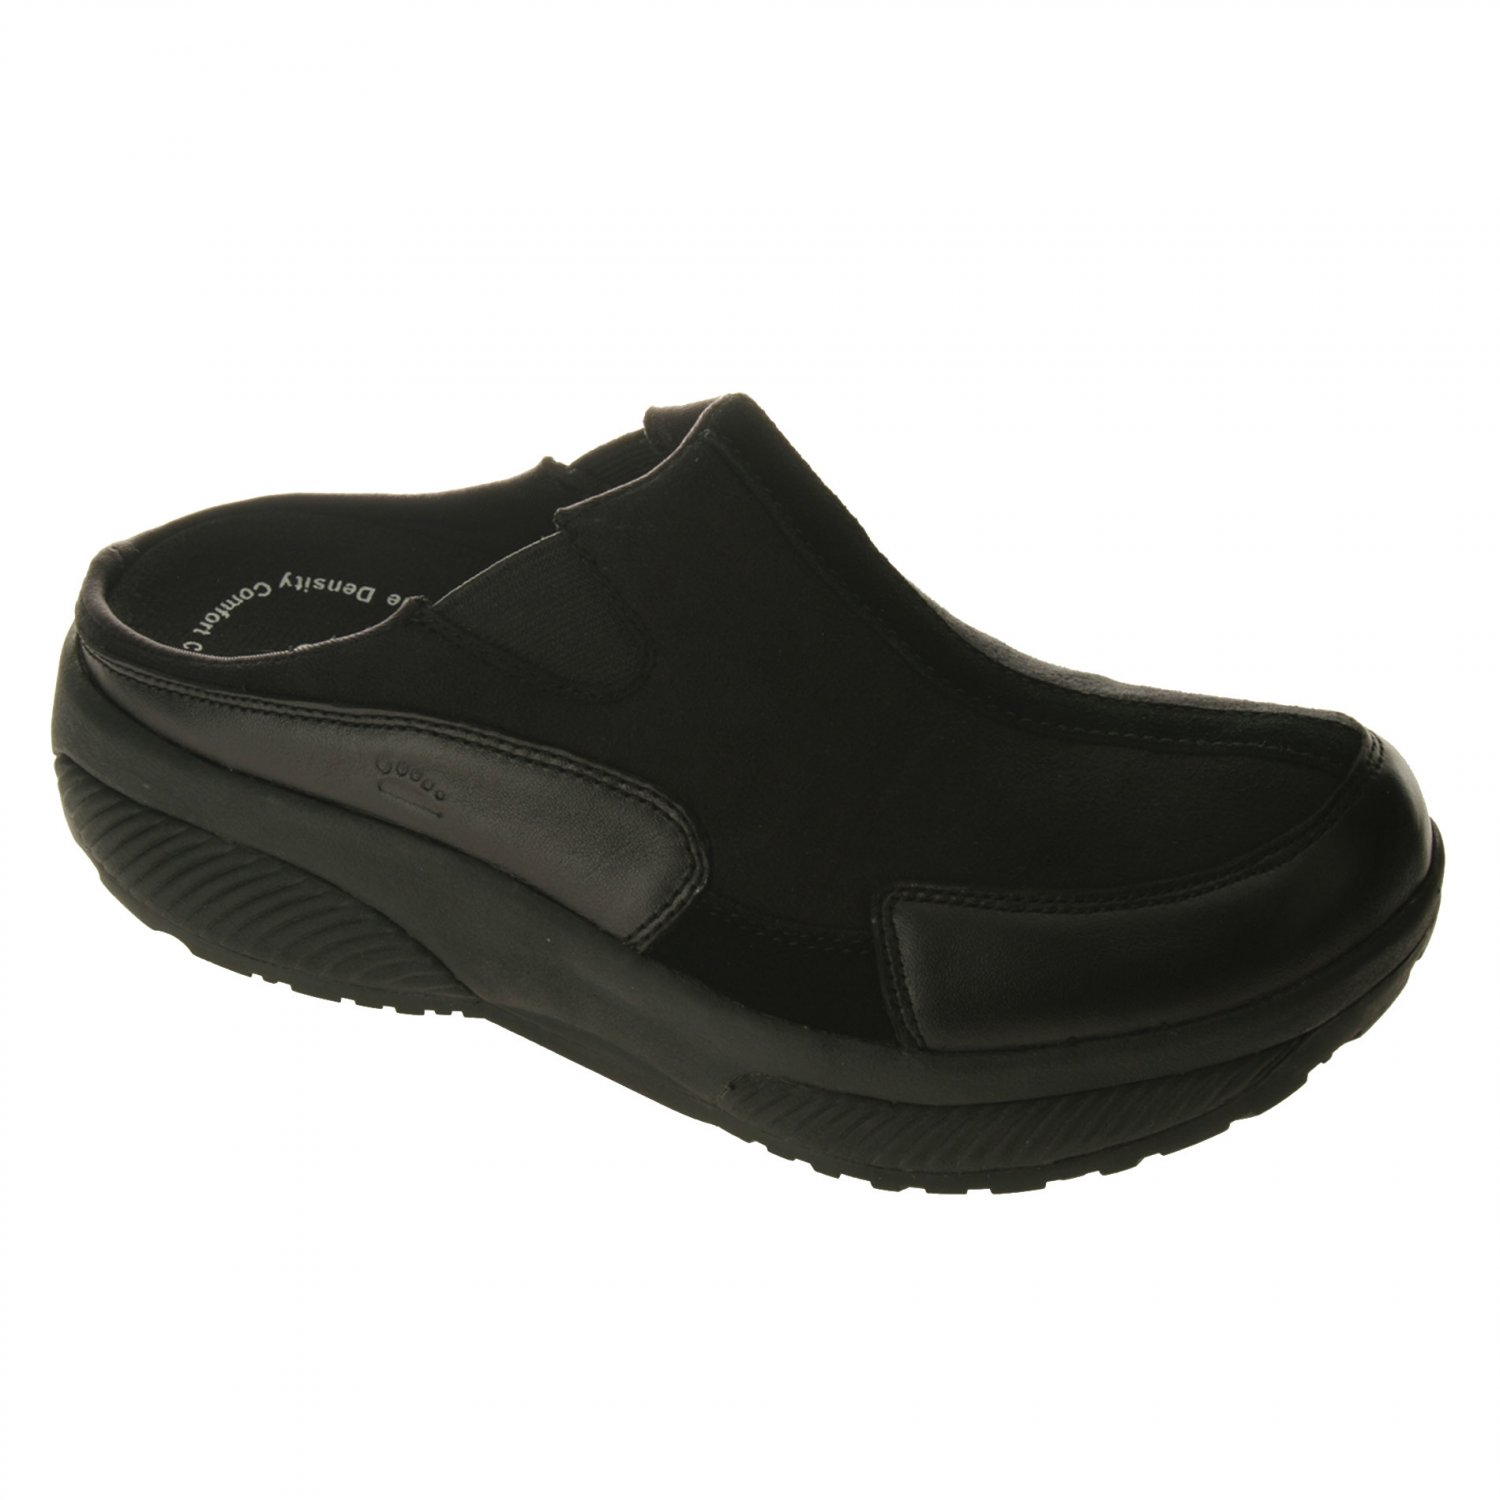 Spring Step STEPS Clogs Shoes All Sizes & Colors $79.99